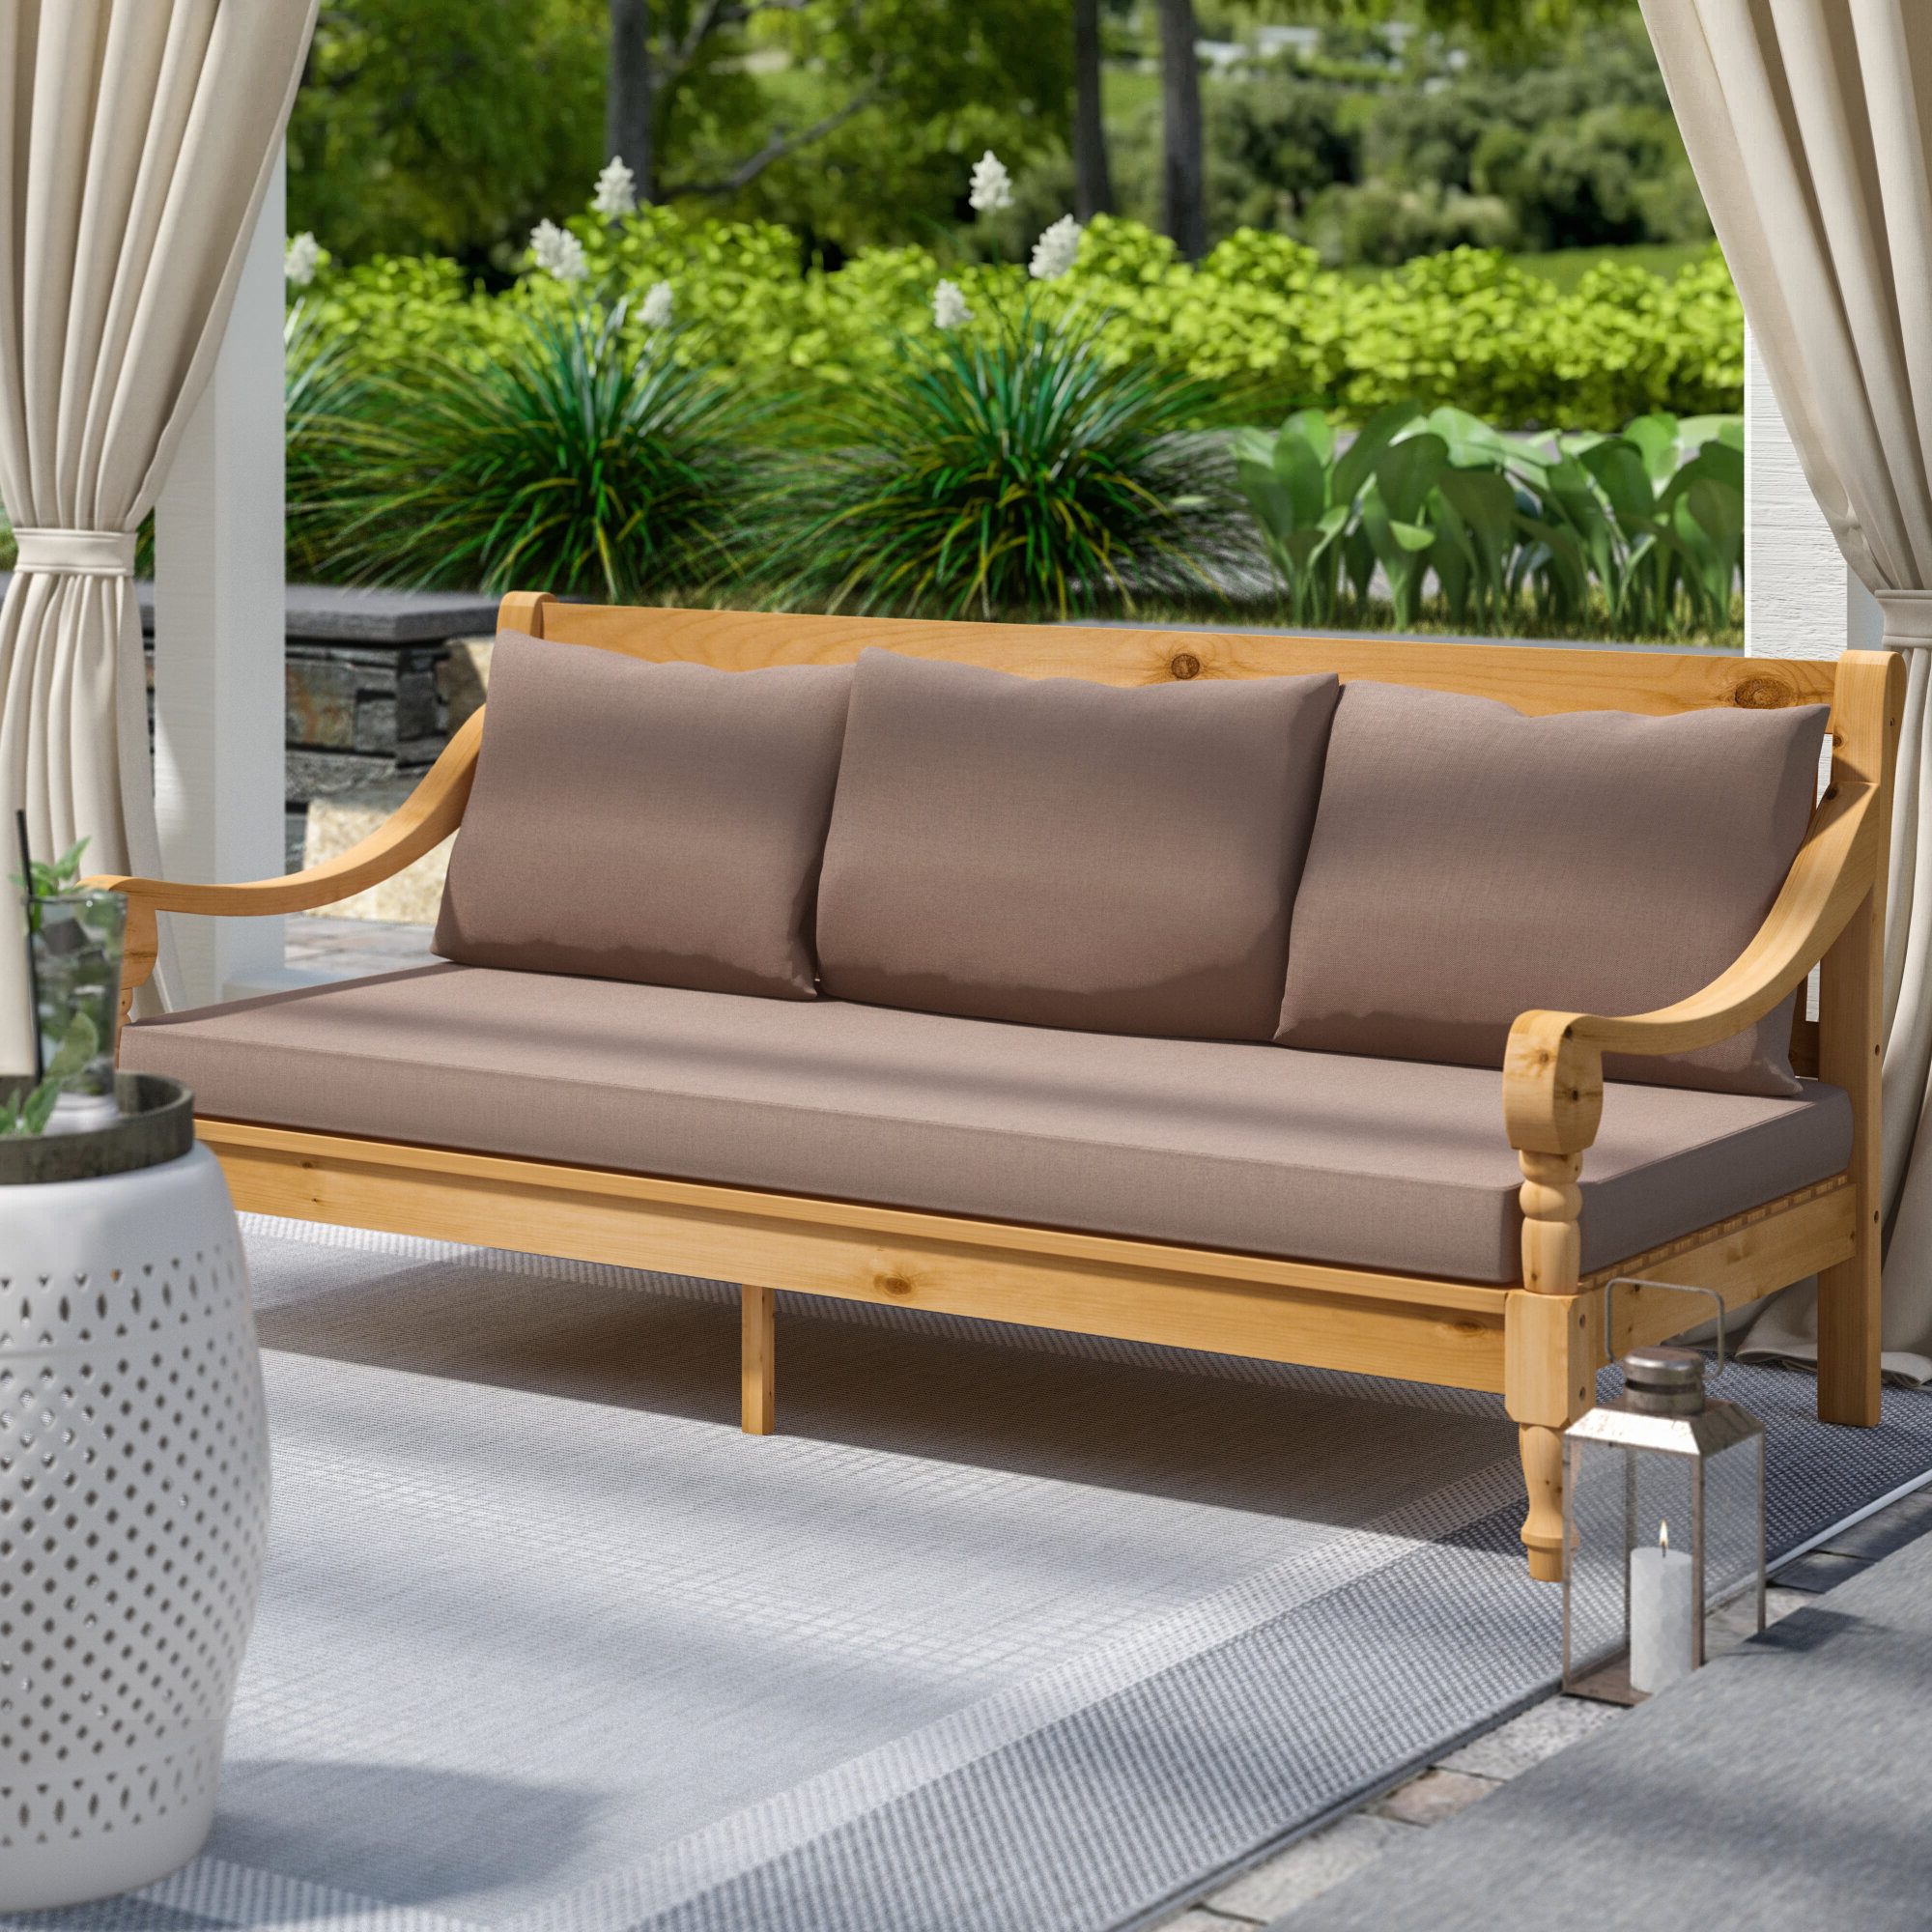 Clary Teak Lounge Patio Daybeds With Cushion Pertaining To Favorite Roush Teak Patio Daybed With Cushions (View 7 of 20)